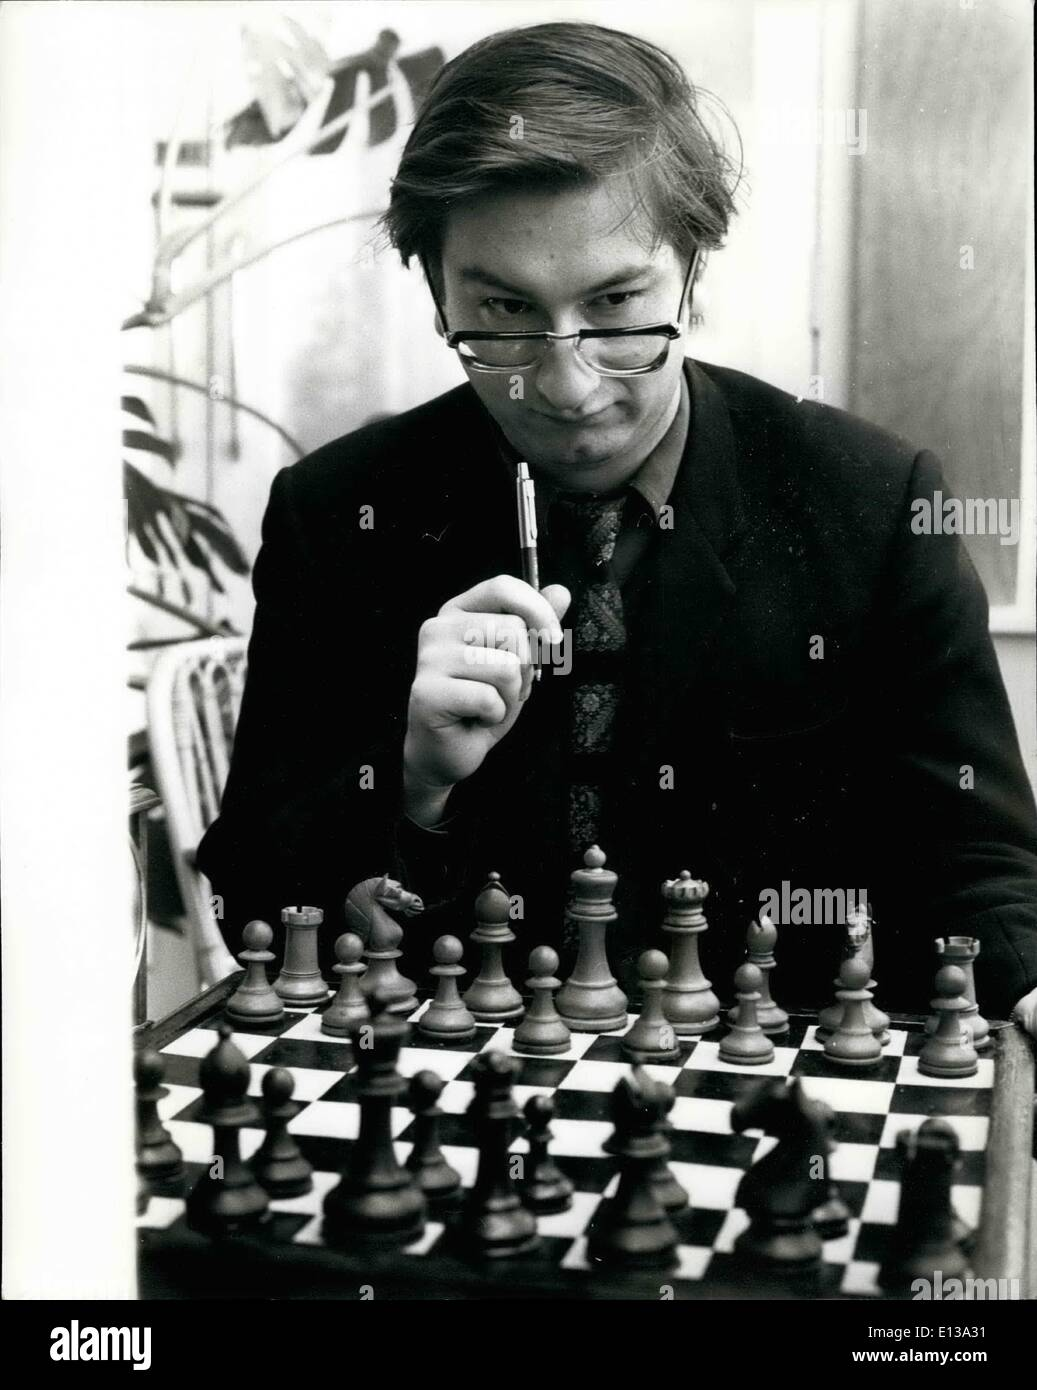 Feb. 29, 2012 - Hastings International Chess Congress: The Hastings 46th. International Chess Congress opened today. Approximately 250 players from all parts of the world will be competing. Photo shows. Raymund Keene (England), who is in the Premier Section-studies the board during a practice game at Hastings today. - Stock Image